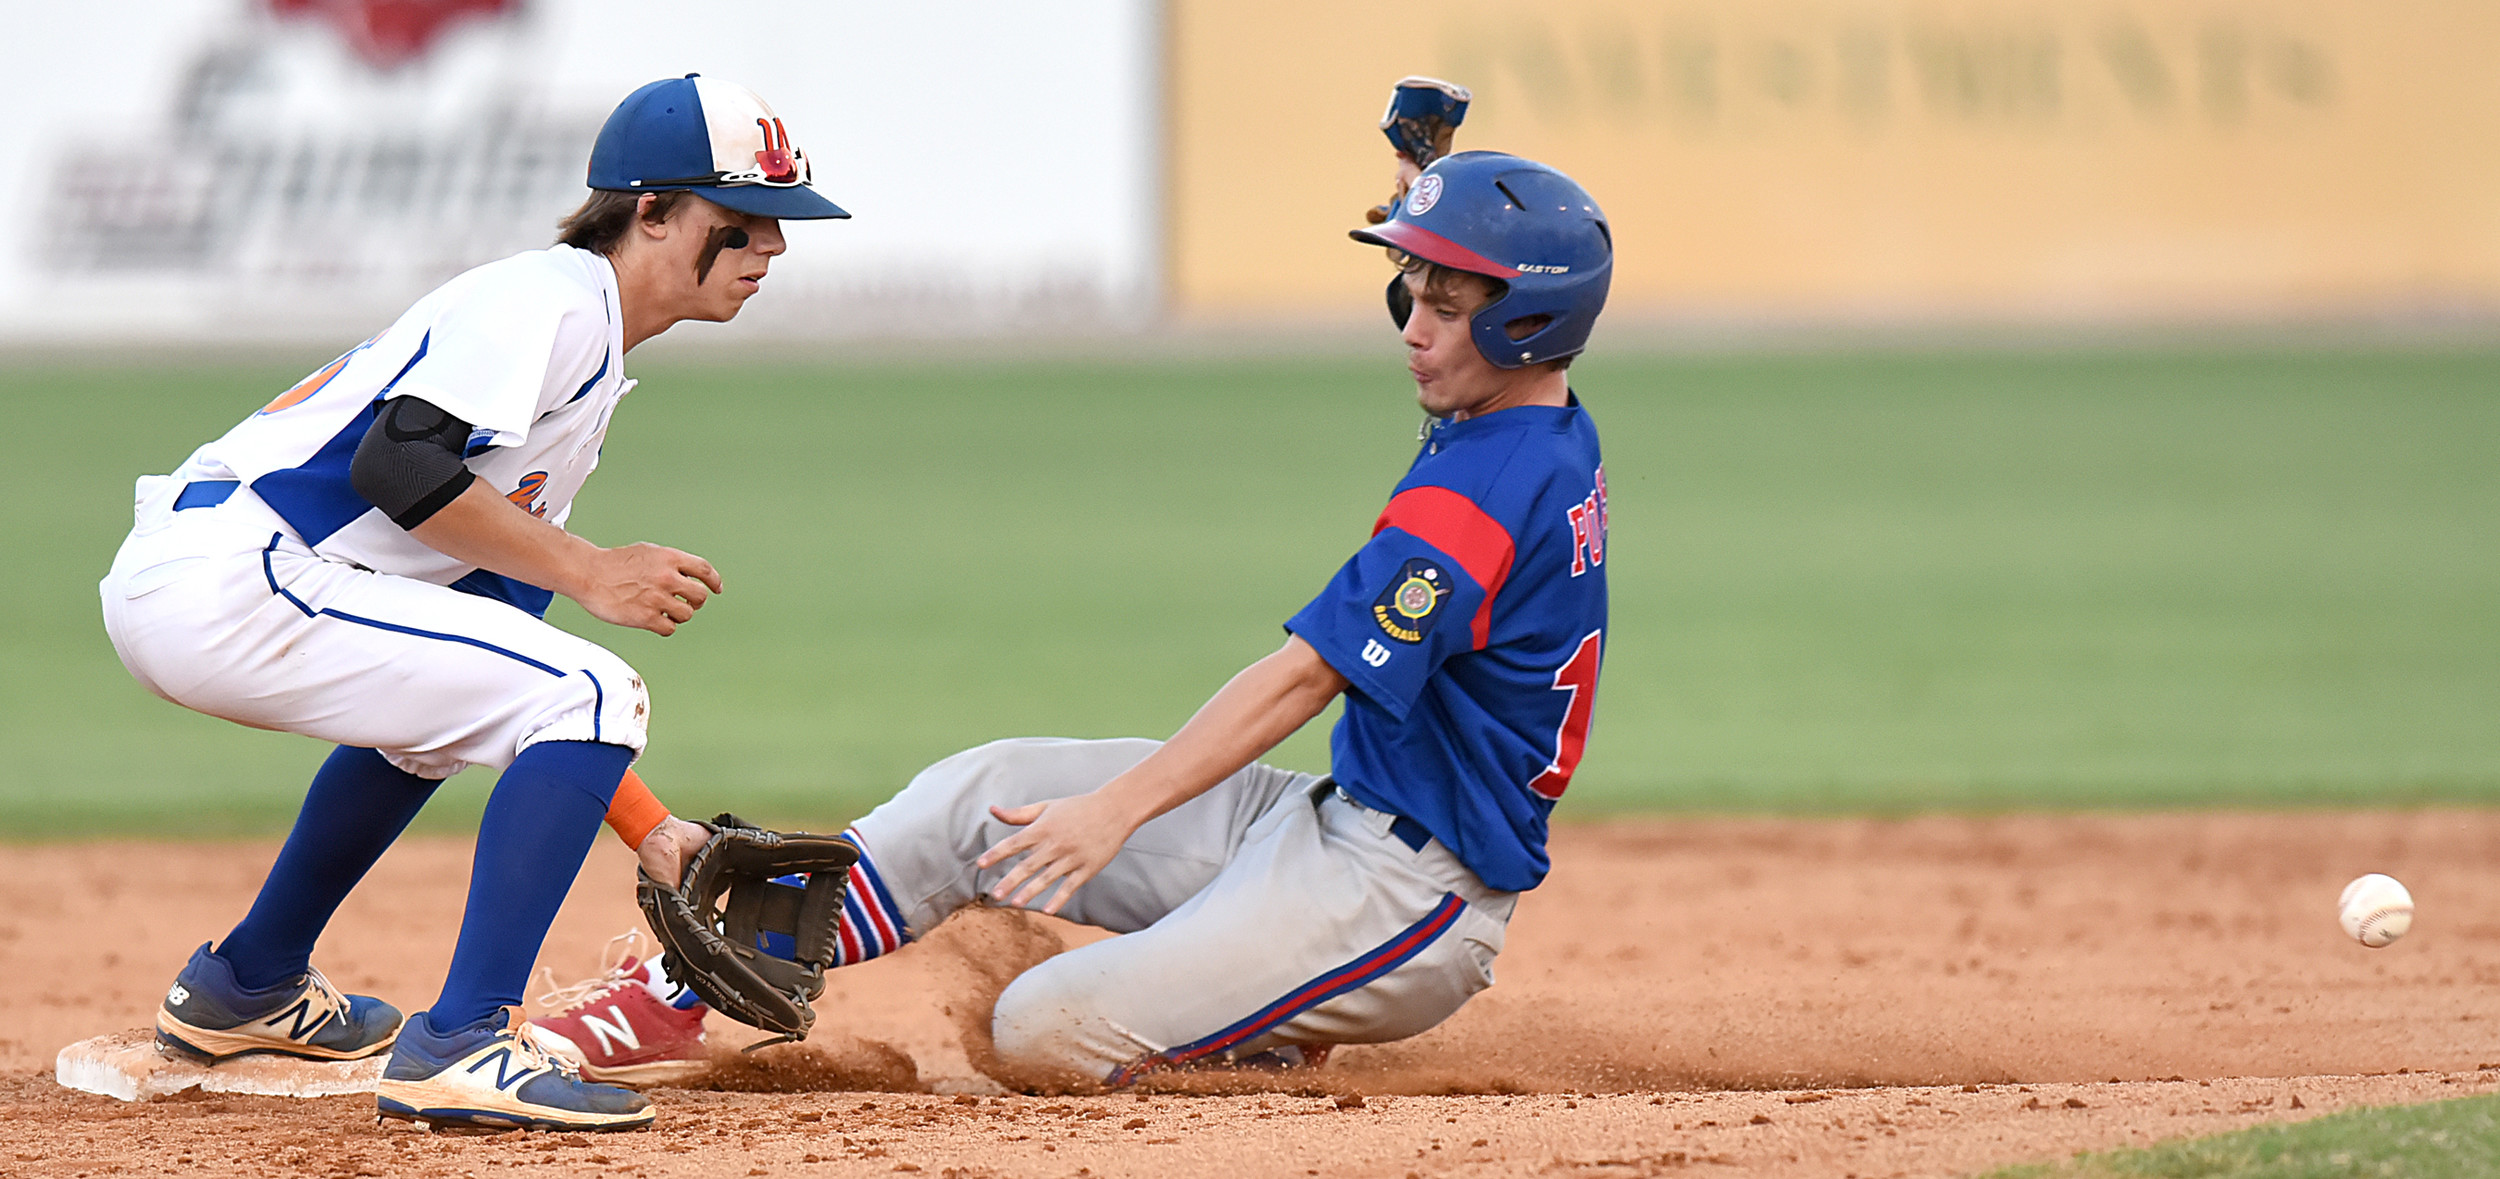 Sumter's Ryan Touchberry slides into second base for a stolen base as Wallace, N.C., shortstop Sawyer Smith waits on the throw in the P-15's 7-4 victory in the Palmetto Invitational on Friday at Riley Park..